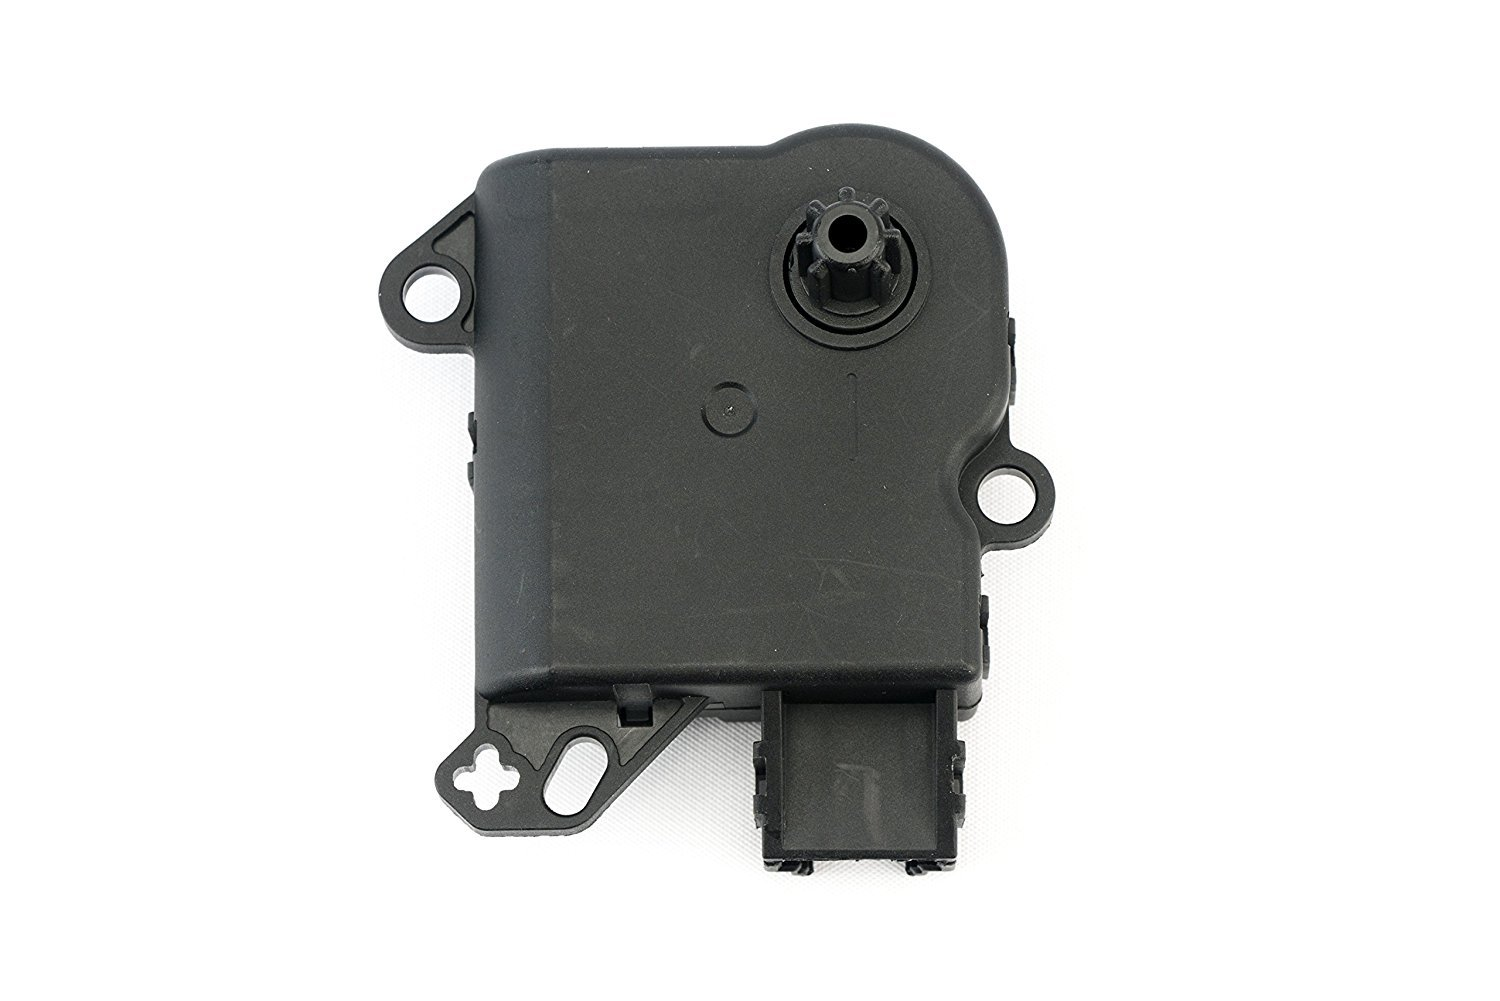 Mercury Mountaineer Rear Auxiliary AC Actuator Lincoln Navigator Explorer Aviator gohantee 1L2Z19E616BA HVAC Blend Door Actuator Replaces 604-213 YH-1743 2L2H19E616AA Fit for Ford Expedition